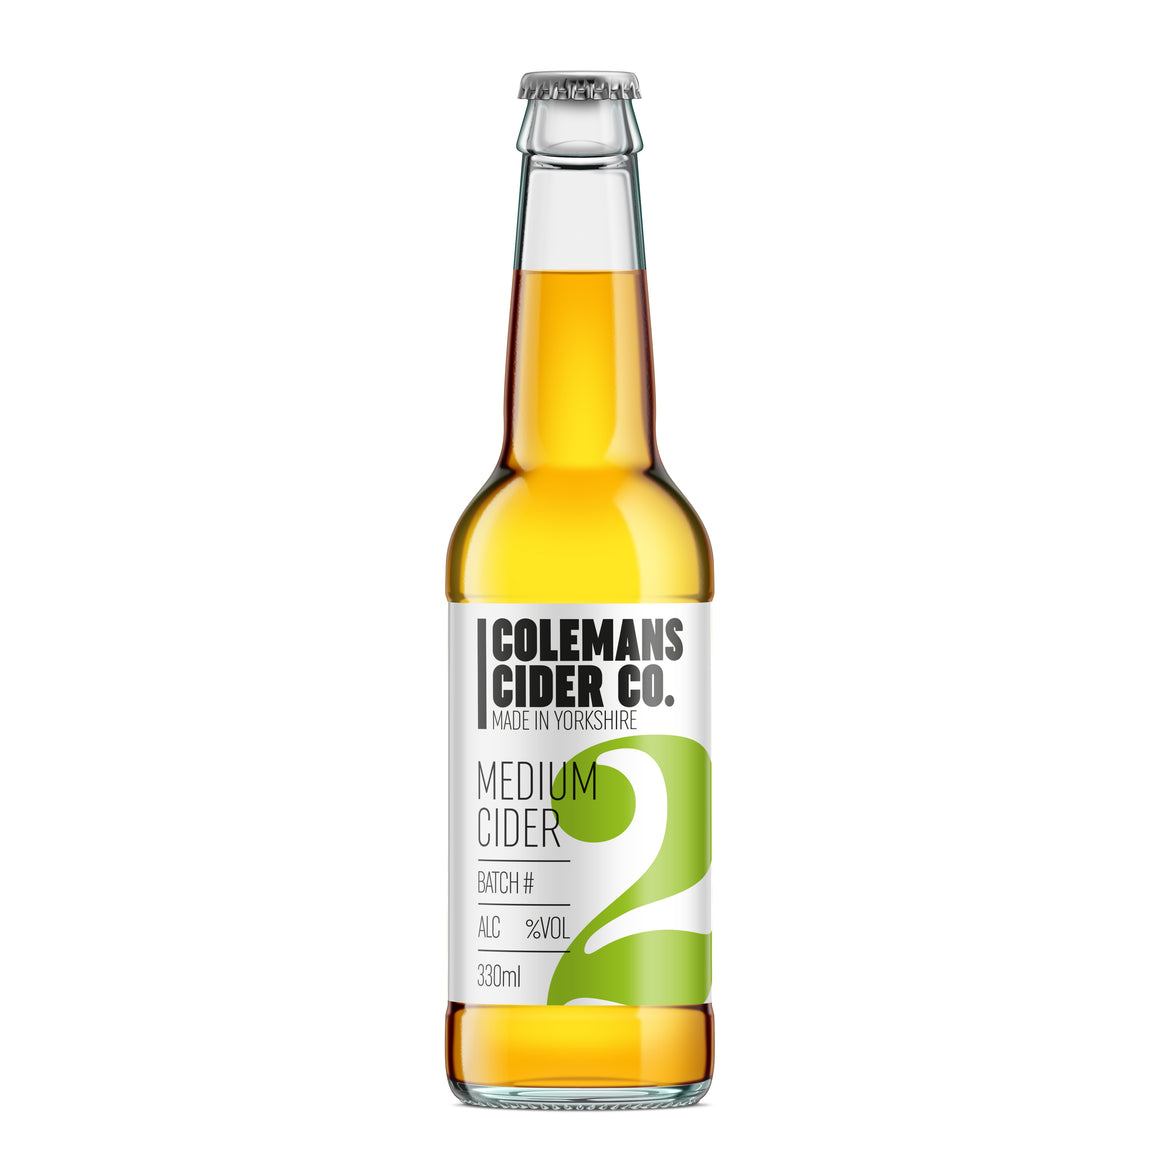 Colemans Cider Company Medium